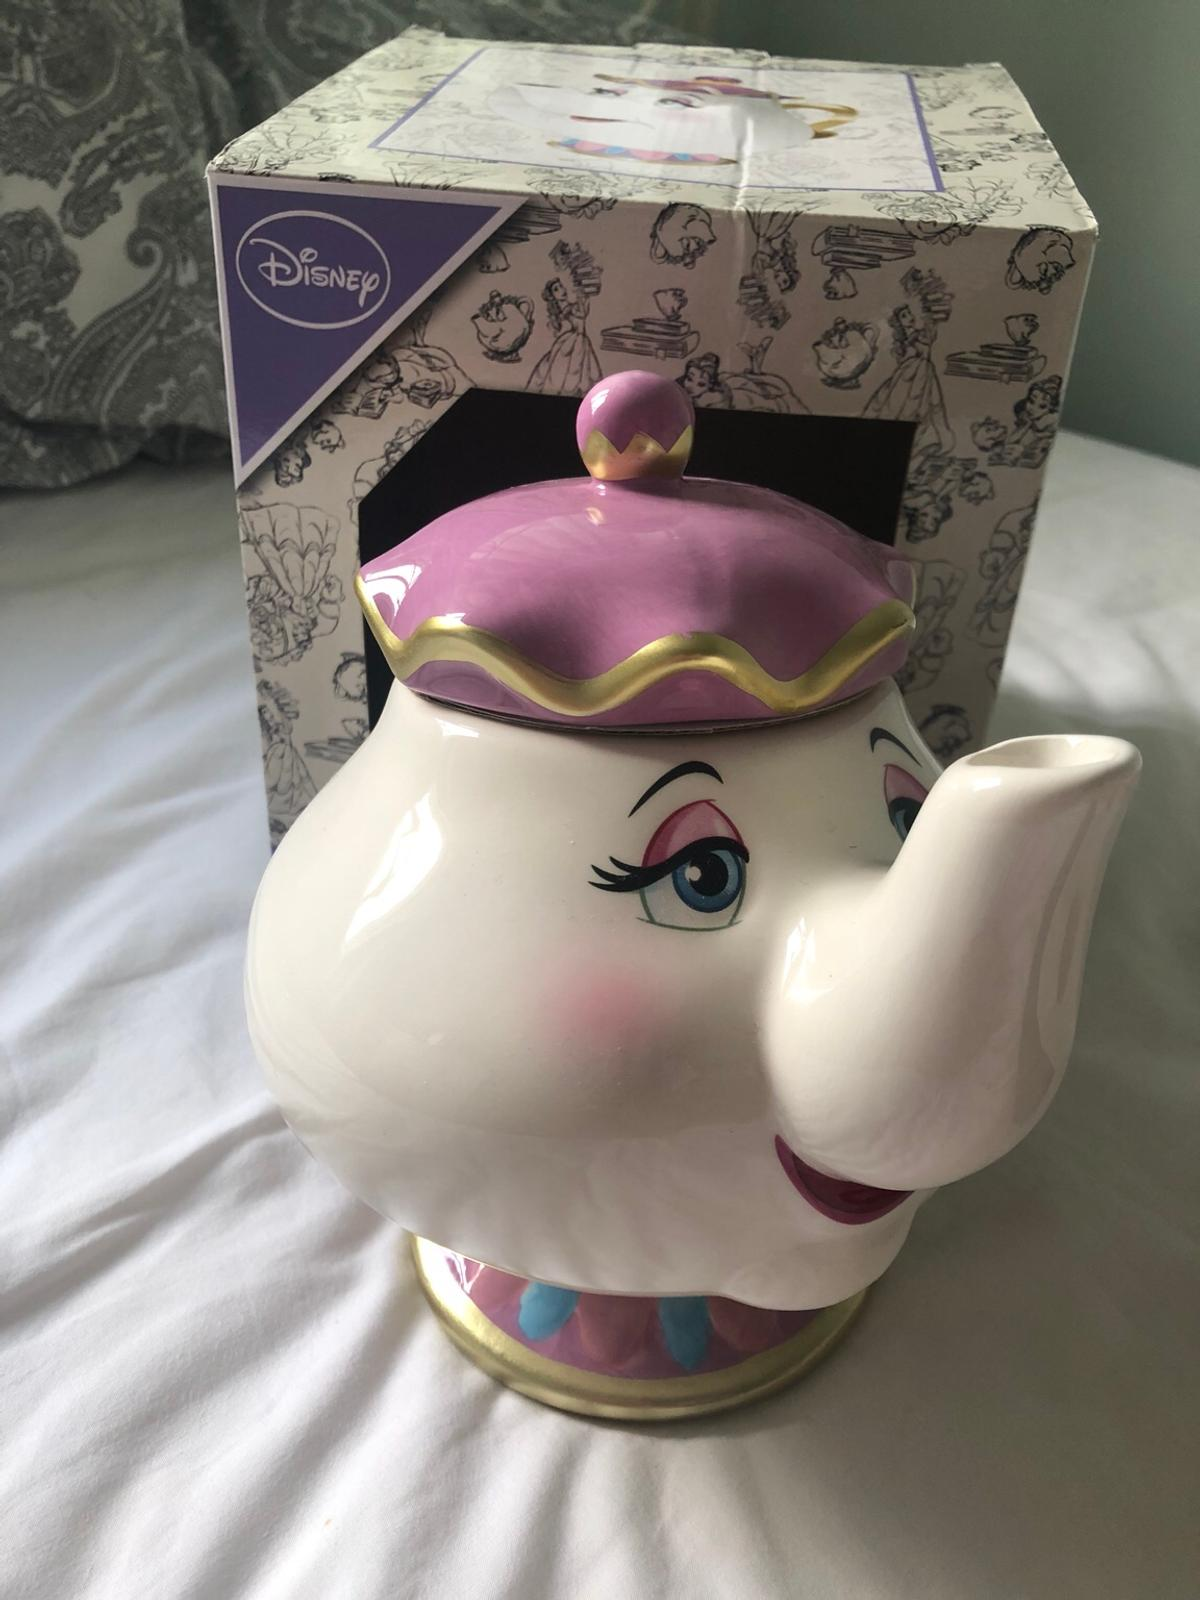 SOLD OUT. Super hard to find teapot! Took me months to find this however I just cannot see me using. Never been used.